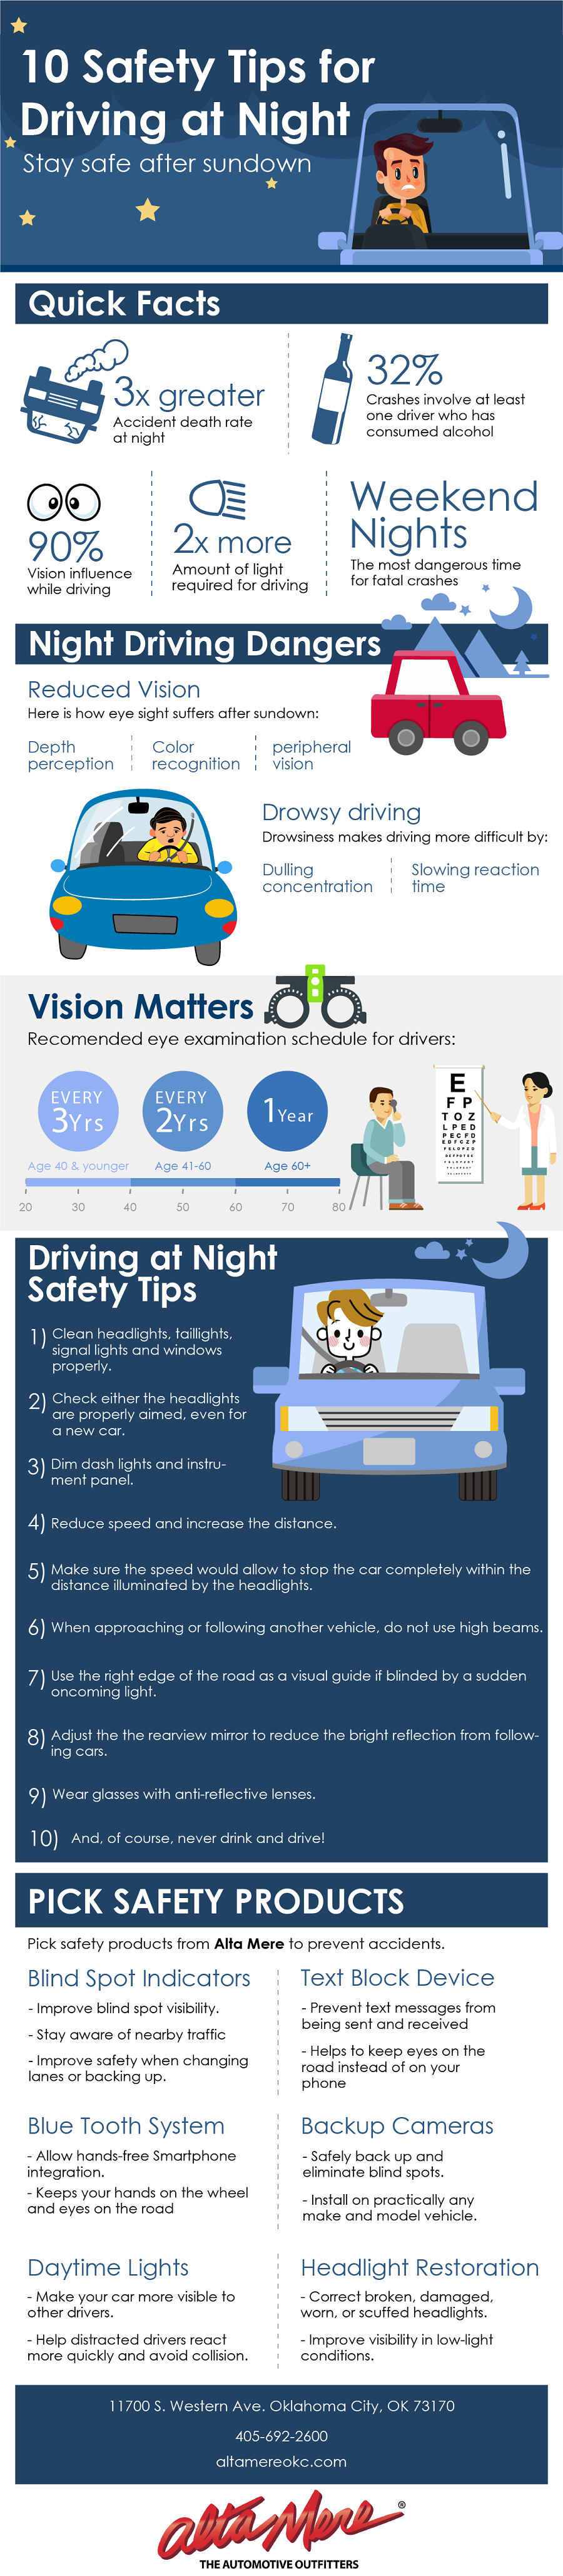 safety tips for driving at night